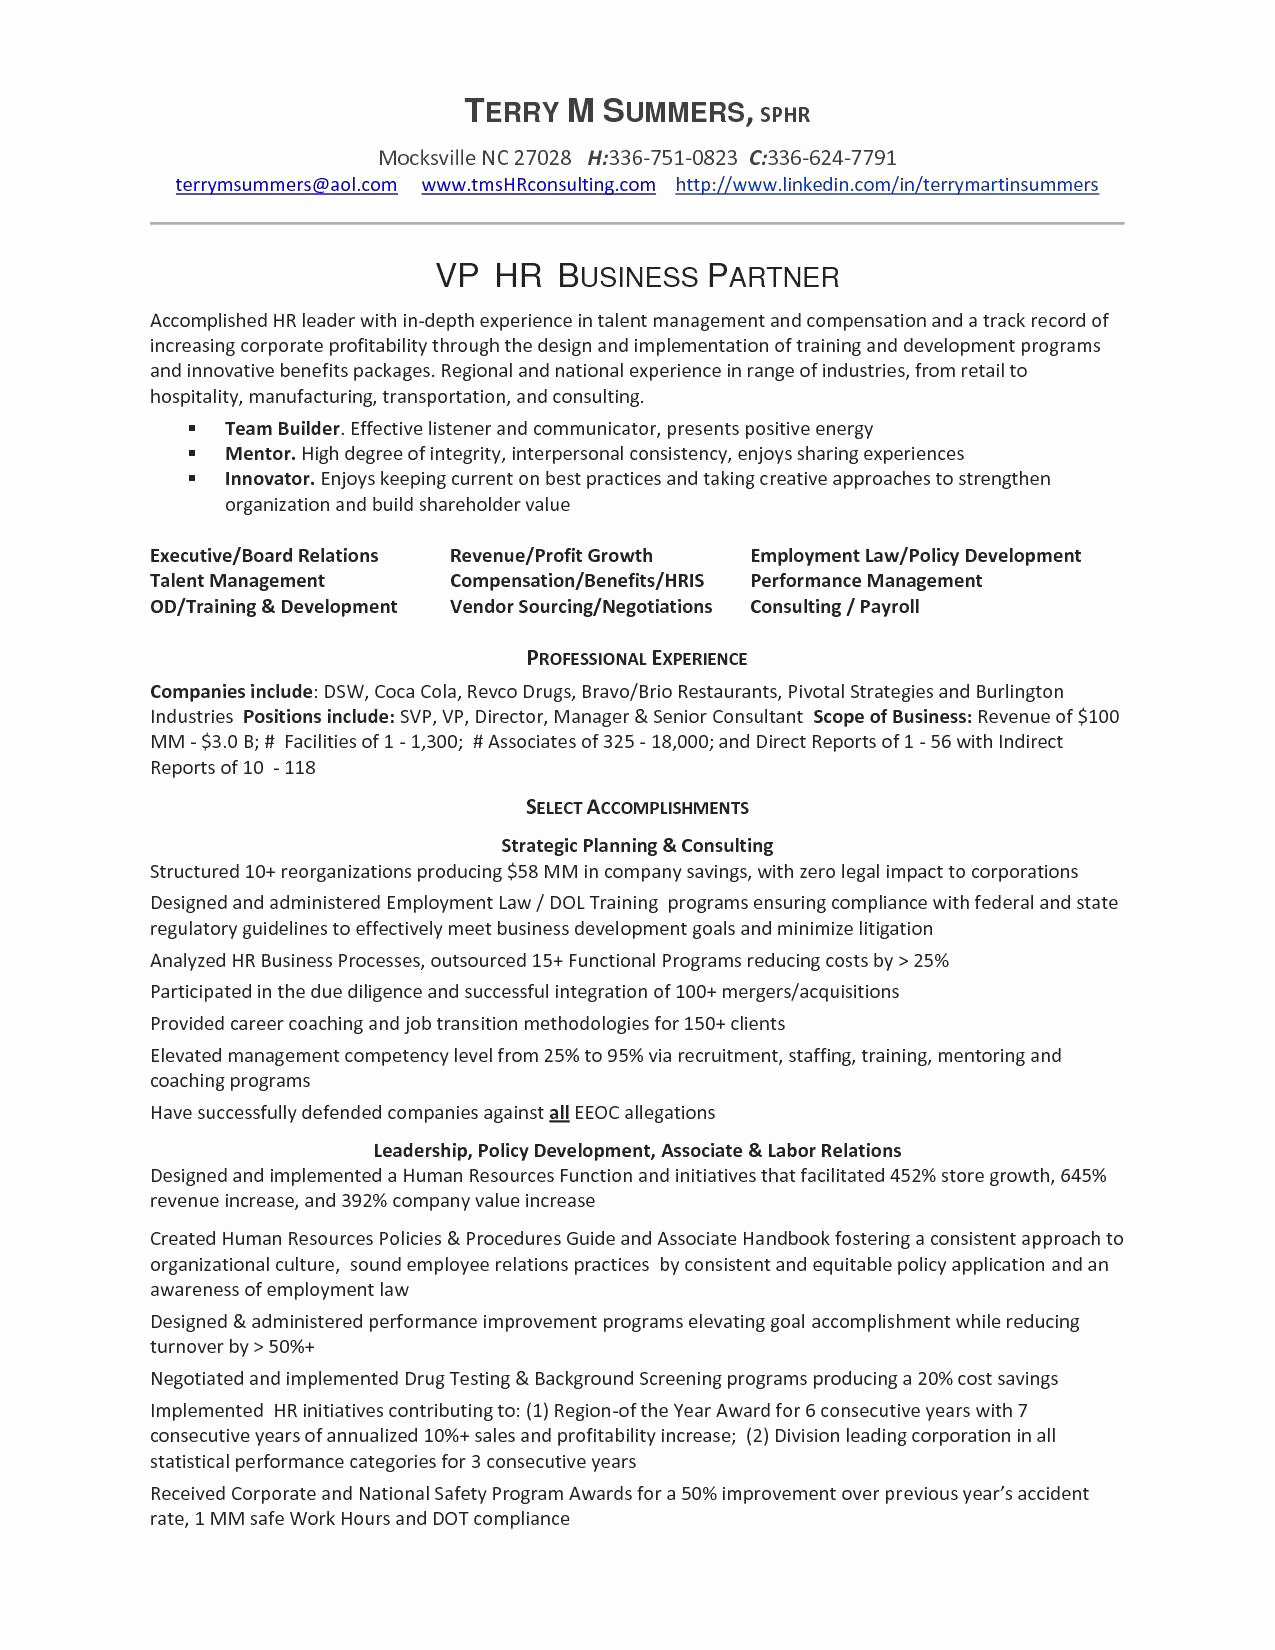 Puppy Sale Contract Template